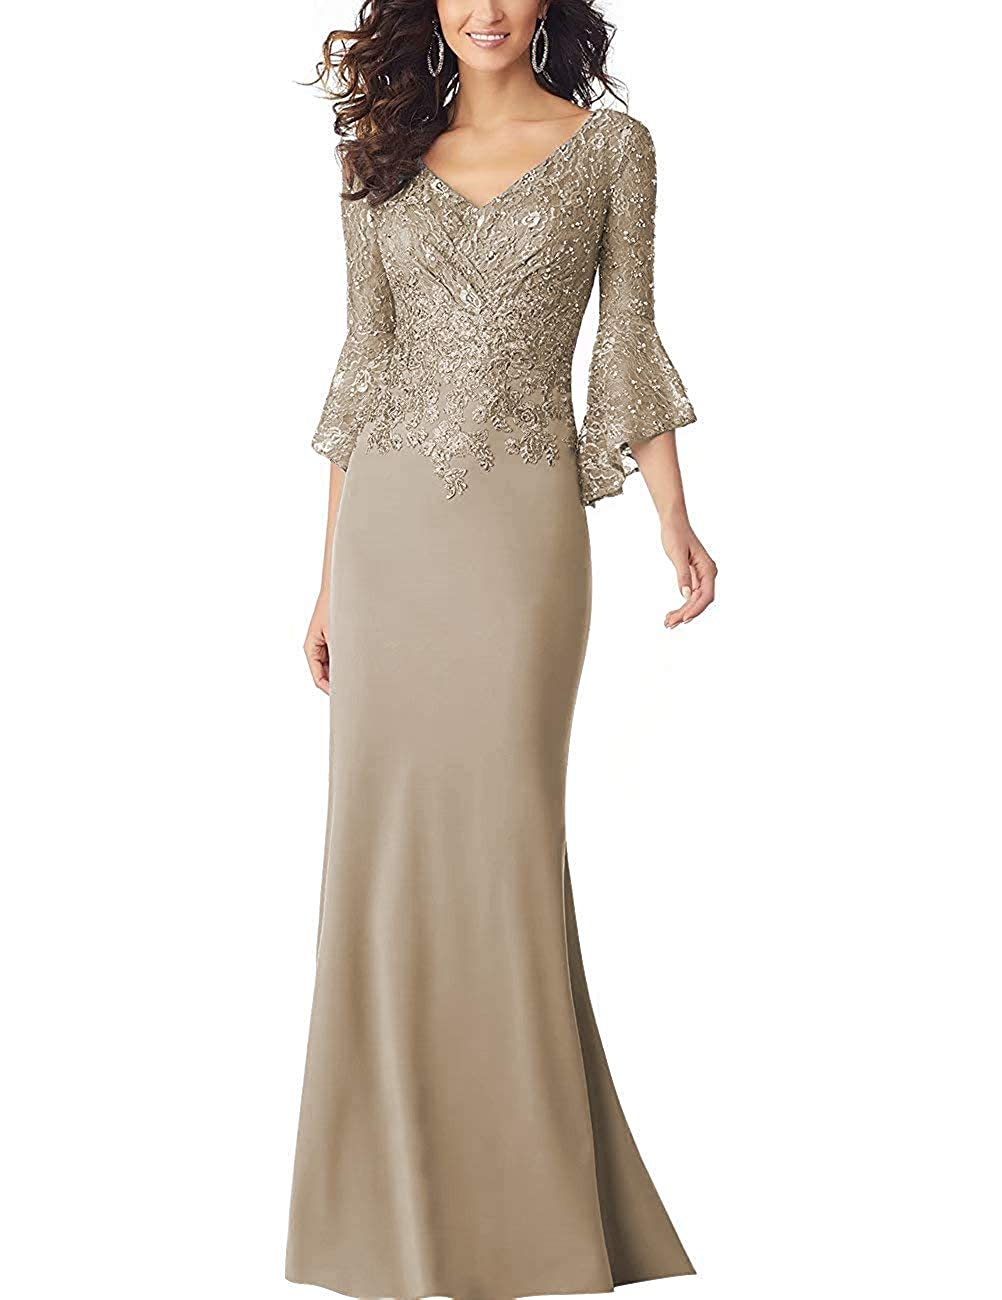 Champagne PearlBridal Women's Bodycon Mermaid Mother of The Bride Dresses Lace Ruffle Sleeves Long Evening Party Gown